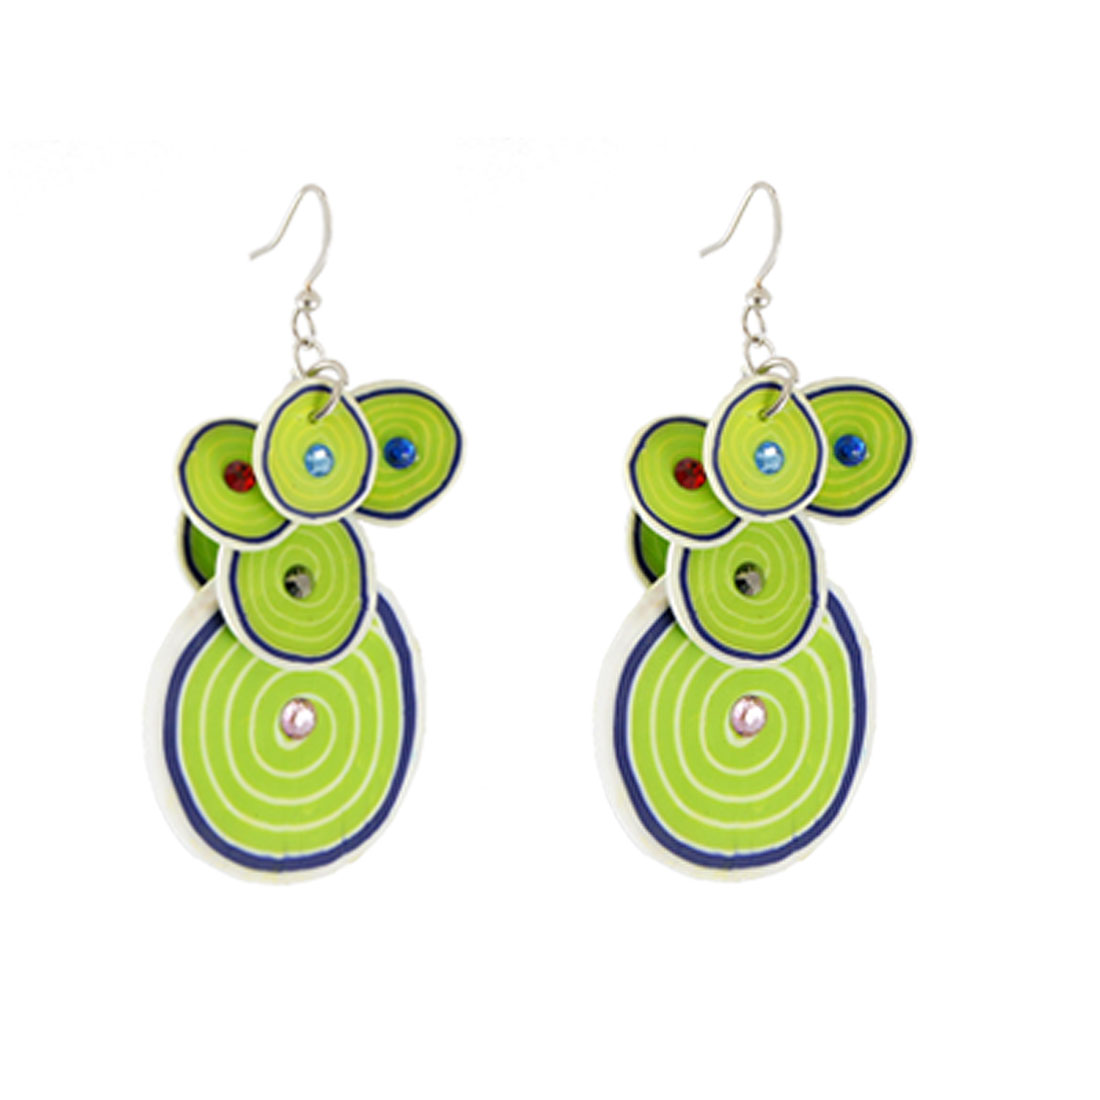 Layered Tree Ring Striped Green Fimo Craft Disc Drop Ear Hook Earrings